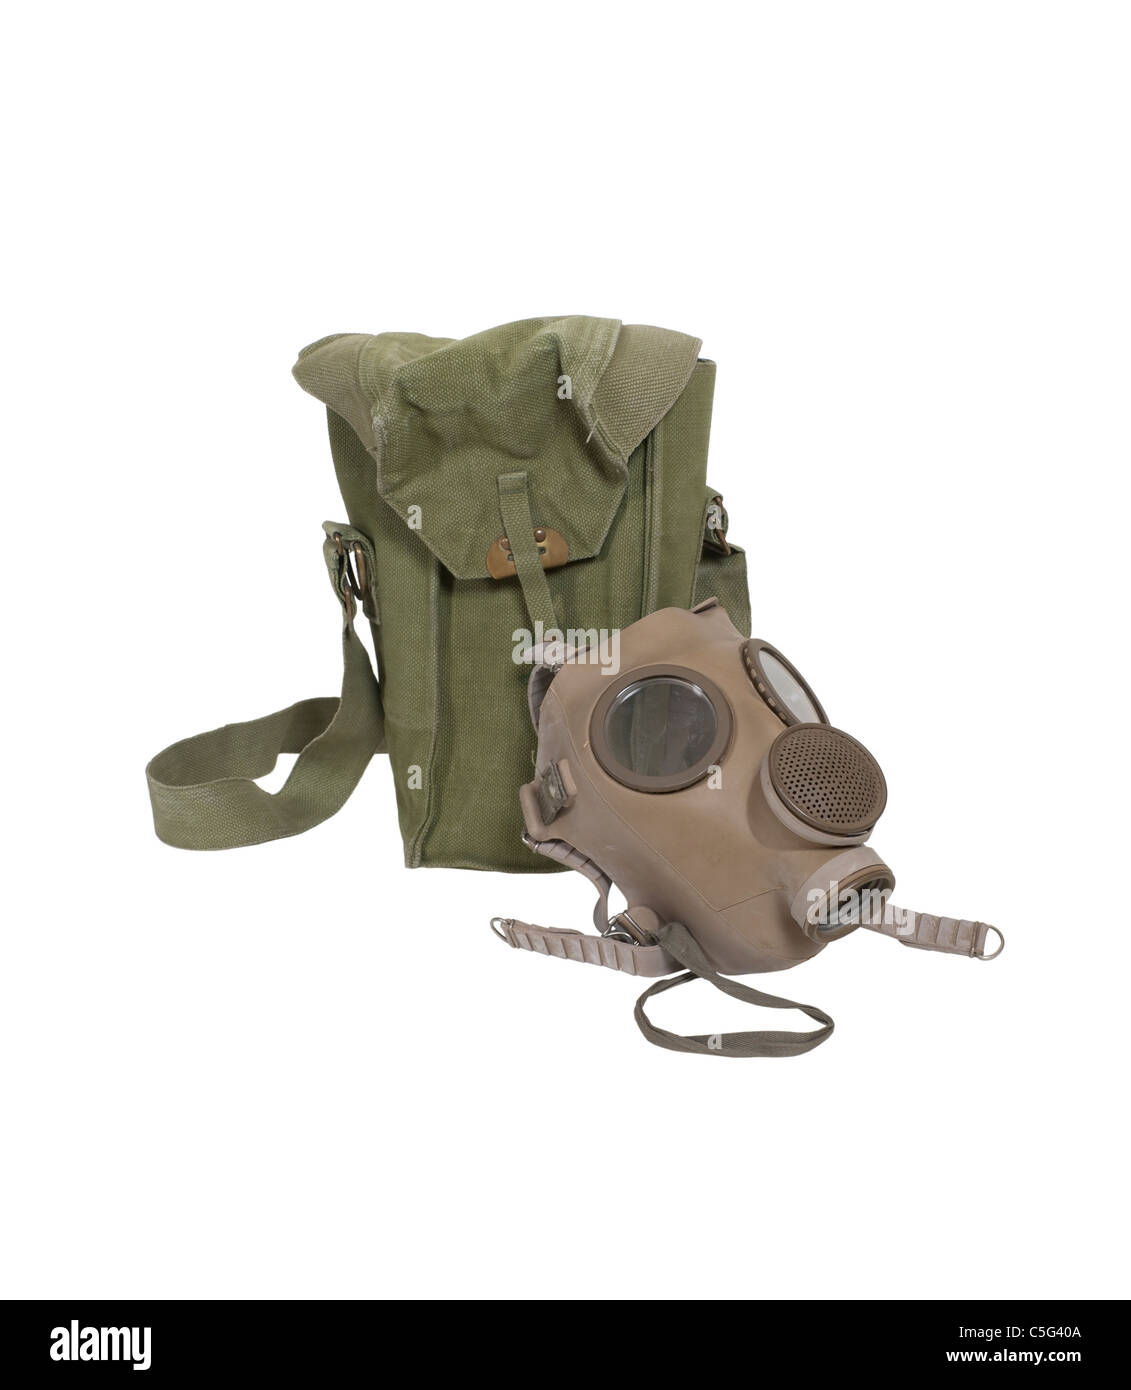 Retro rubber gas mask and carrier bag to protect the wearer from airborne pollutants and toxic gases - path included - Stock Image